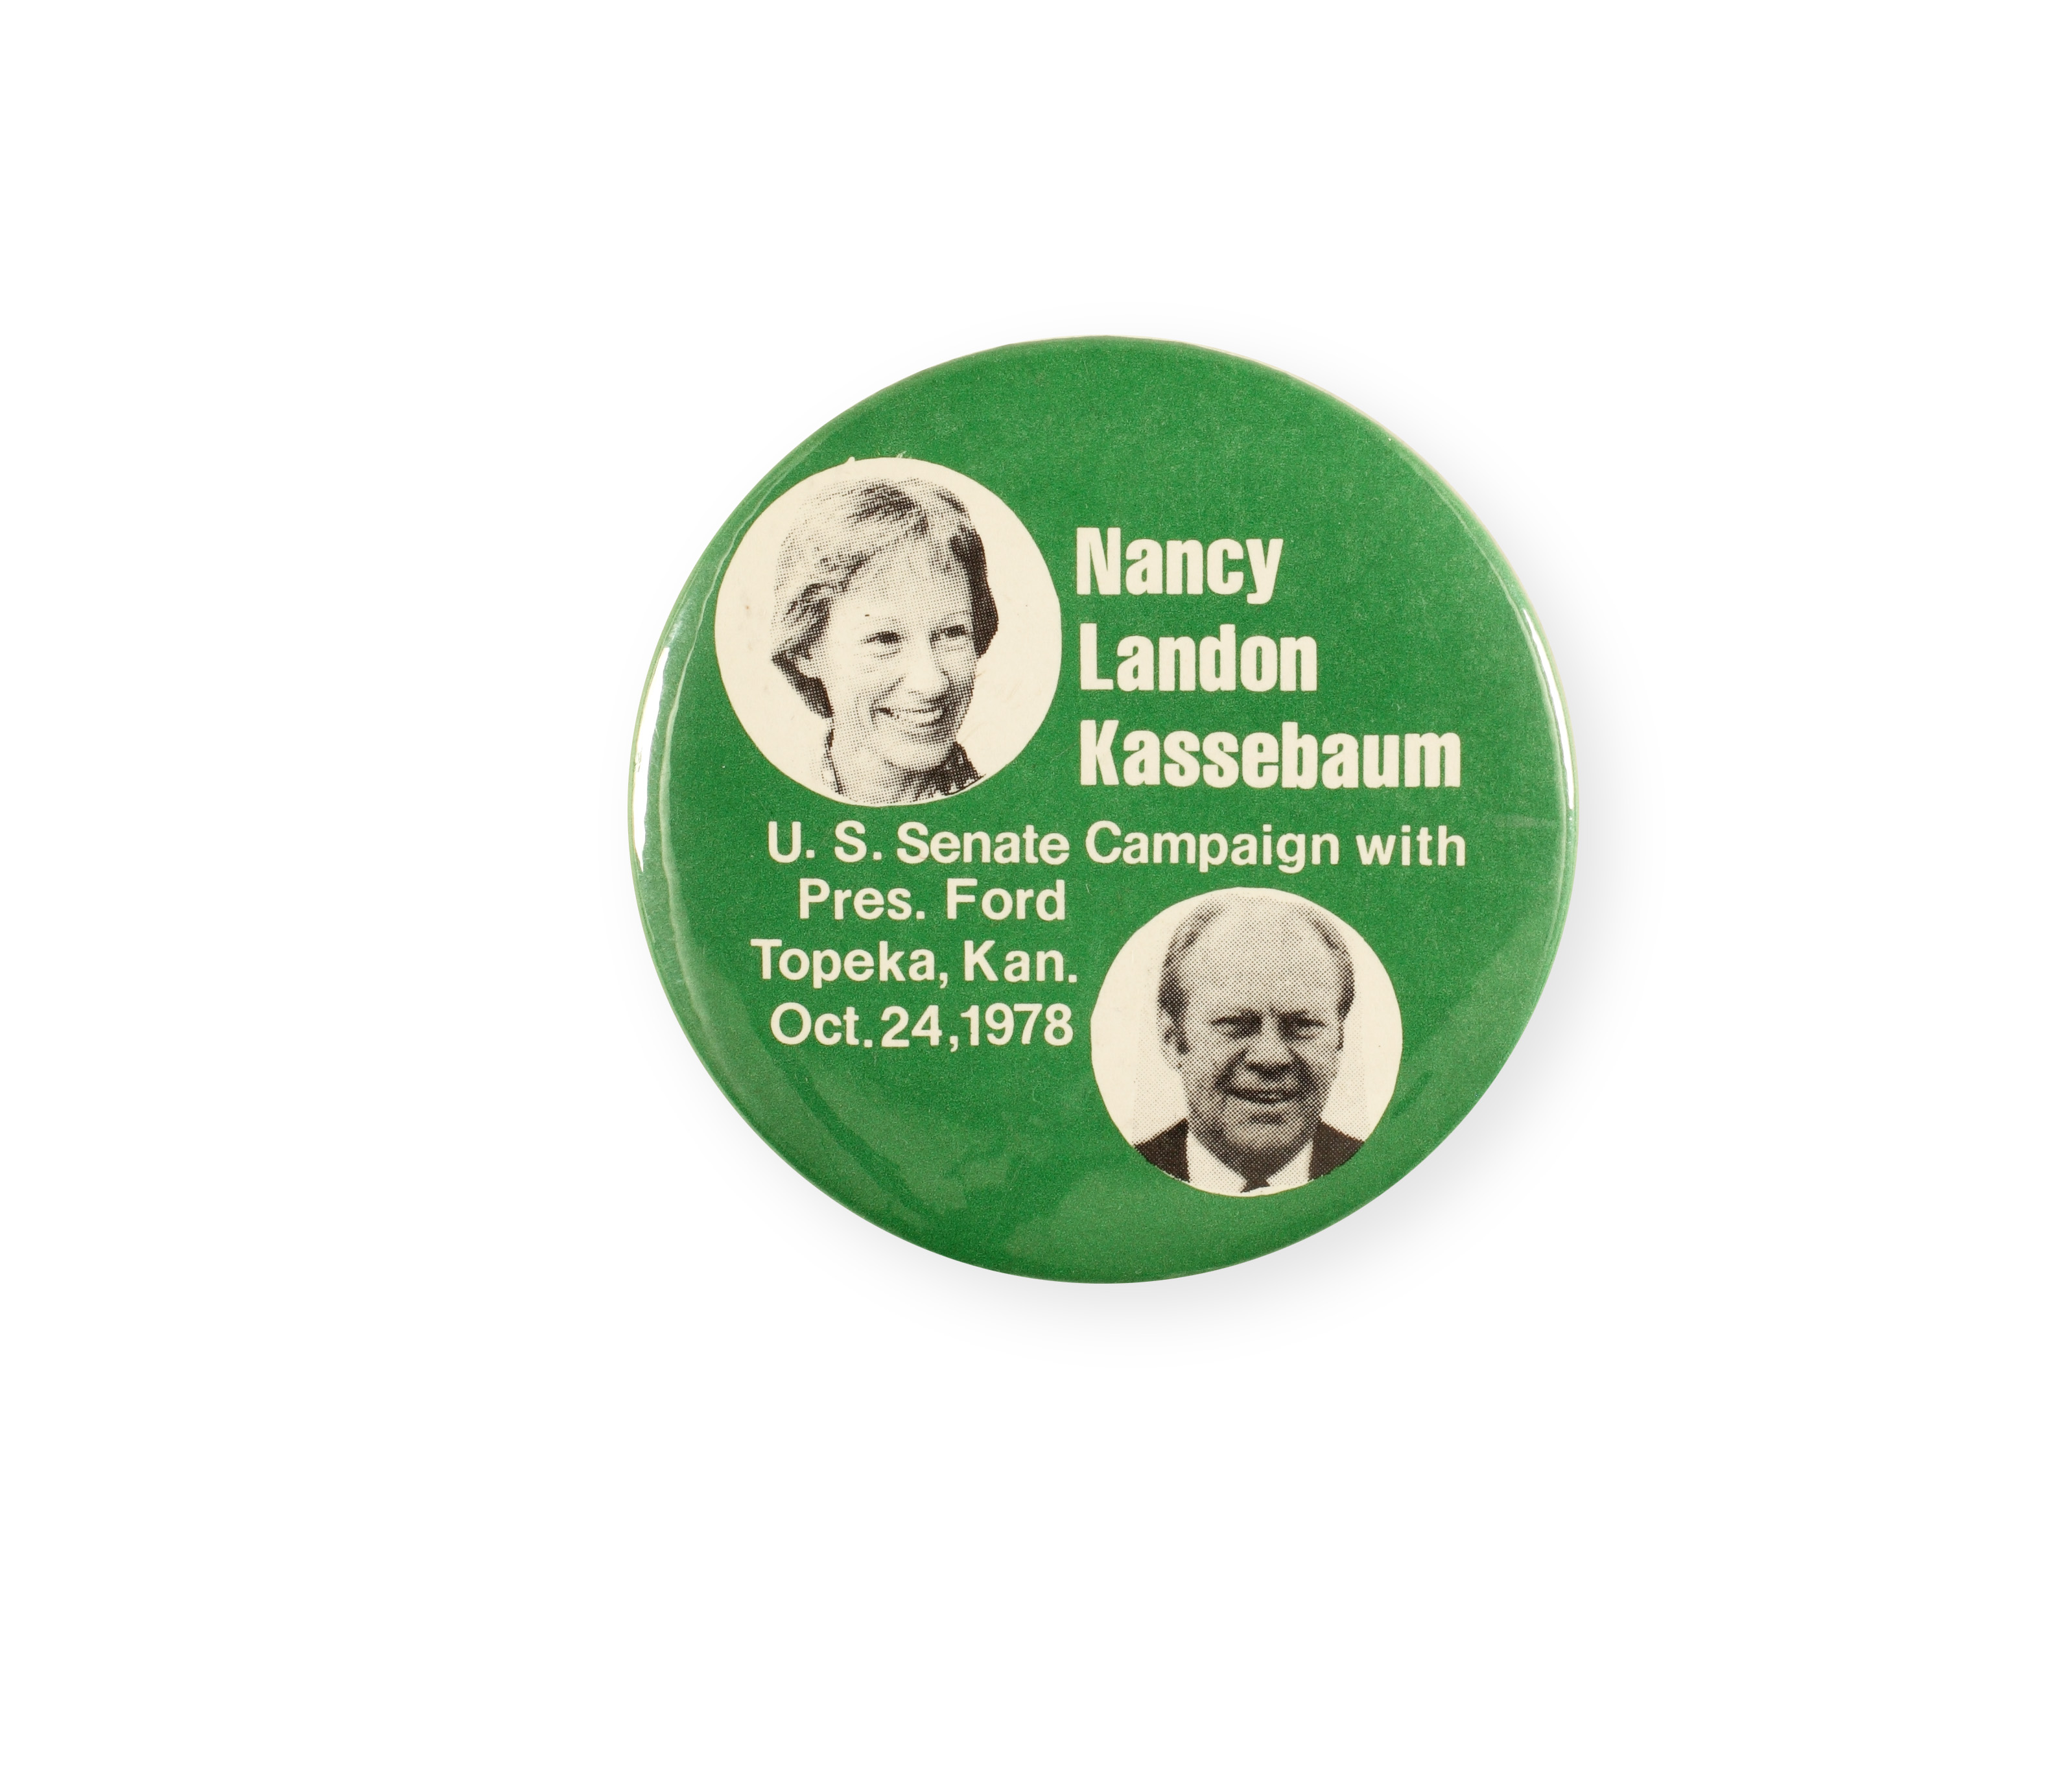 Button for 1978 Kassebaum campaign for U.S. senate